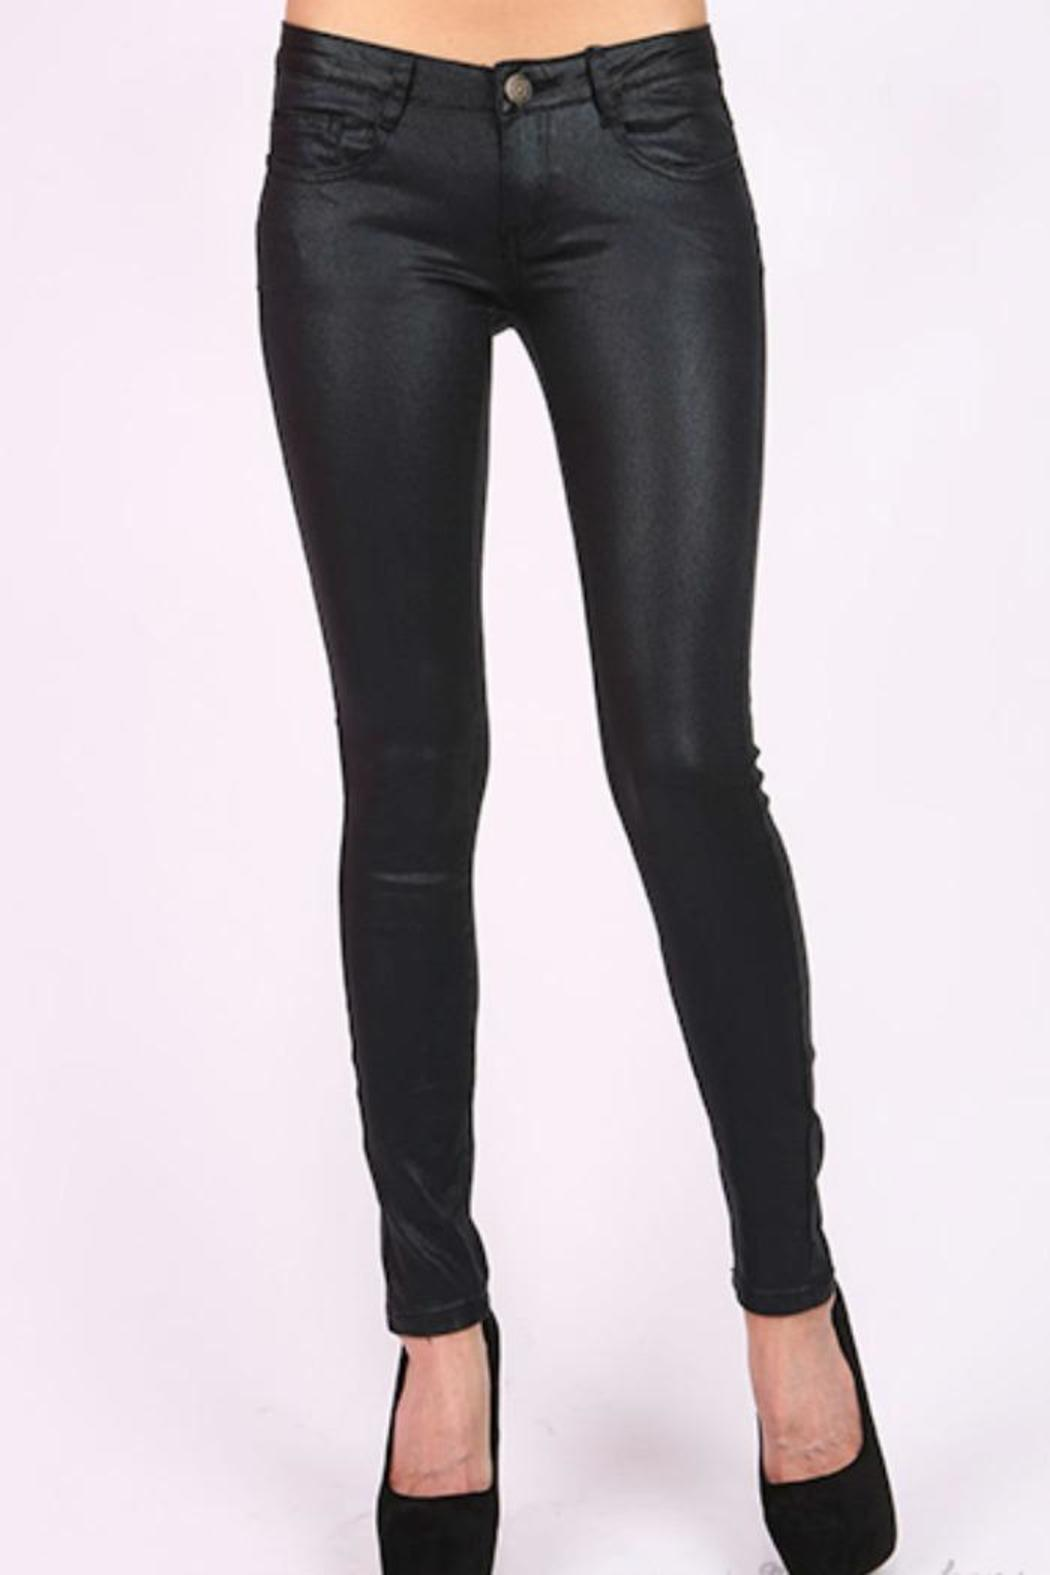 Machine Jeans Black Skinny Jeans from New Jersey by Fly Girl